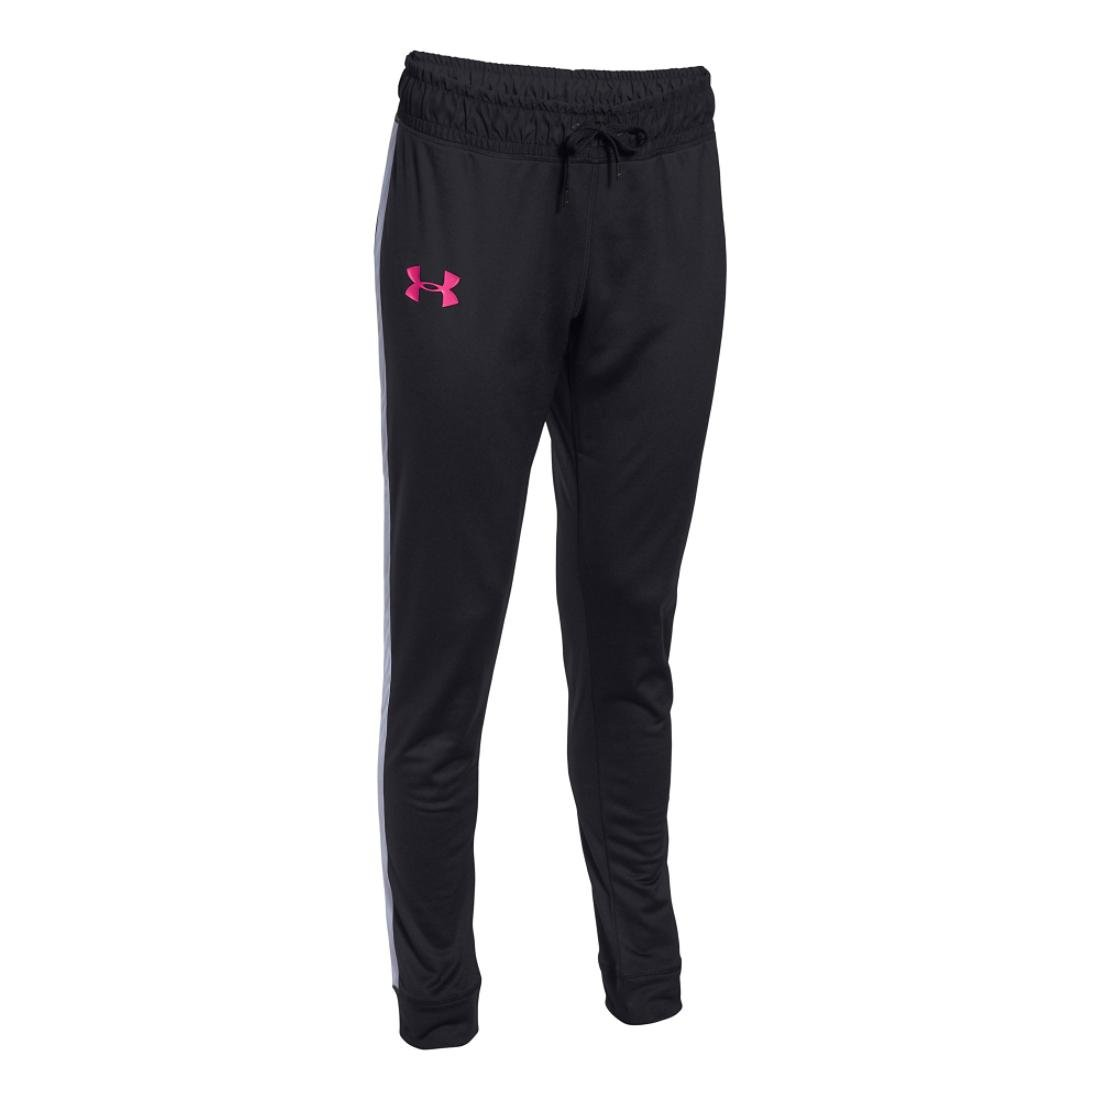 Womens Under Armour Challenge Knit Pant Black/Rebel Pink SM (US 4-6) x One Size